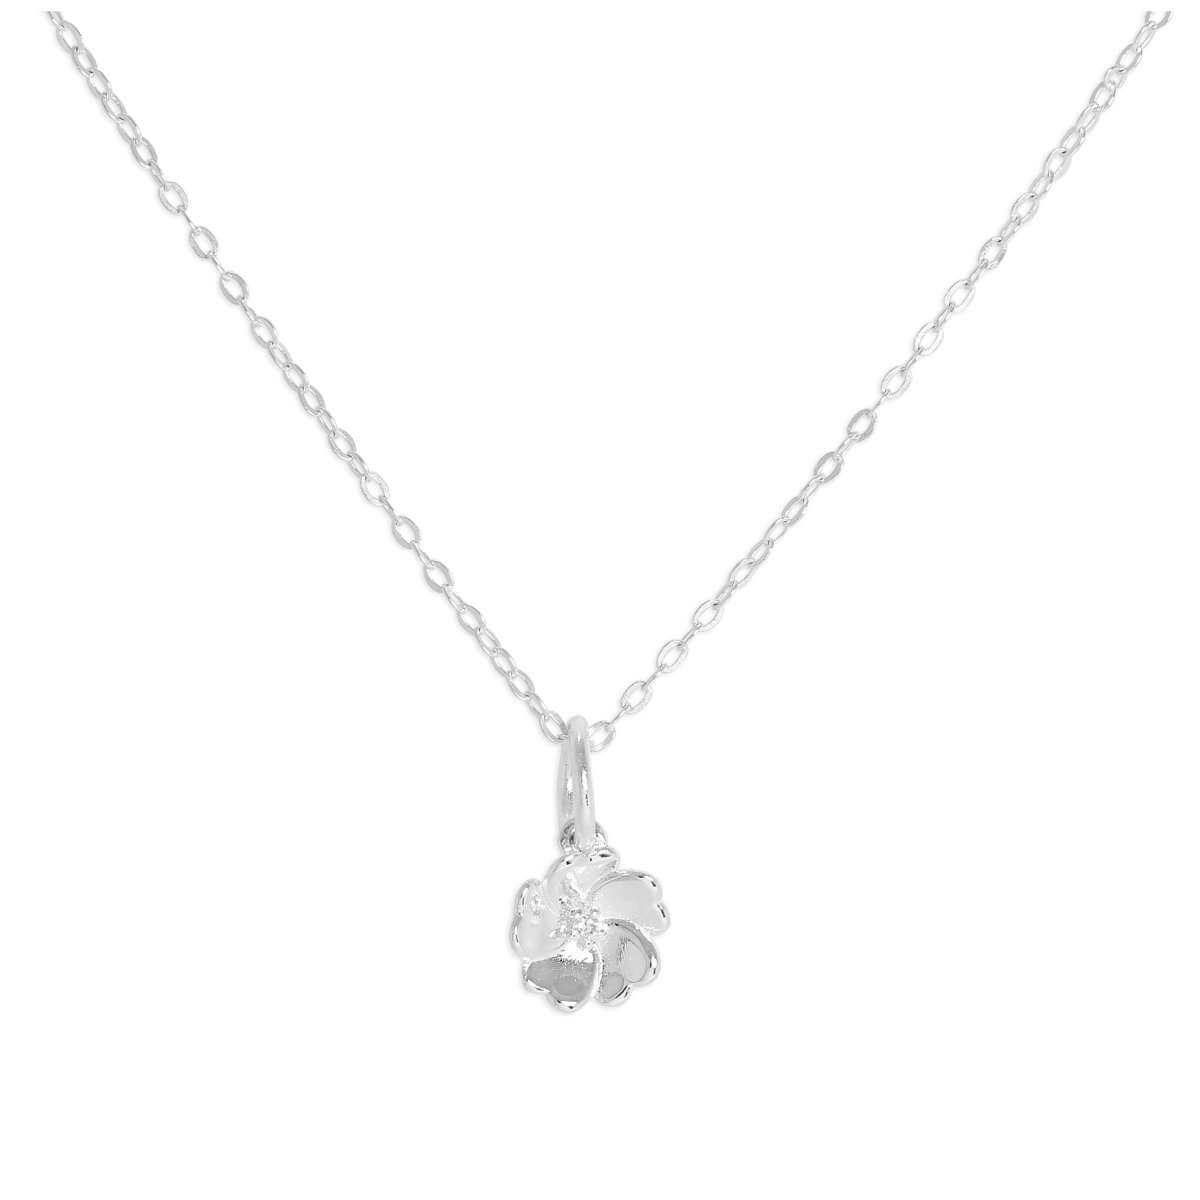 Sterling Silver & Genuine Diamond Flower Necklace 18 Inches Chain